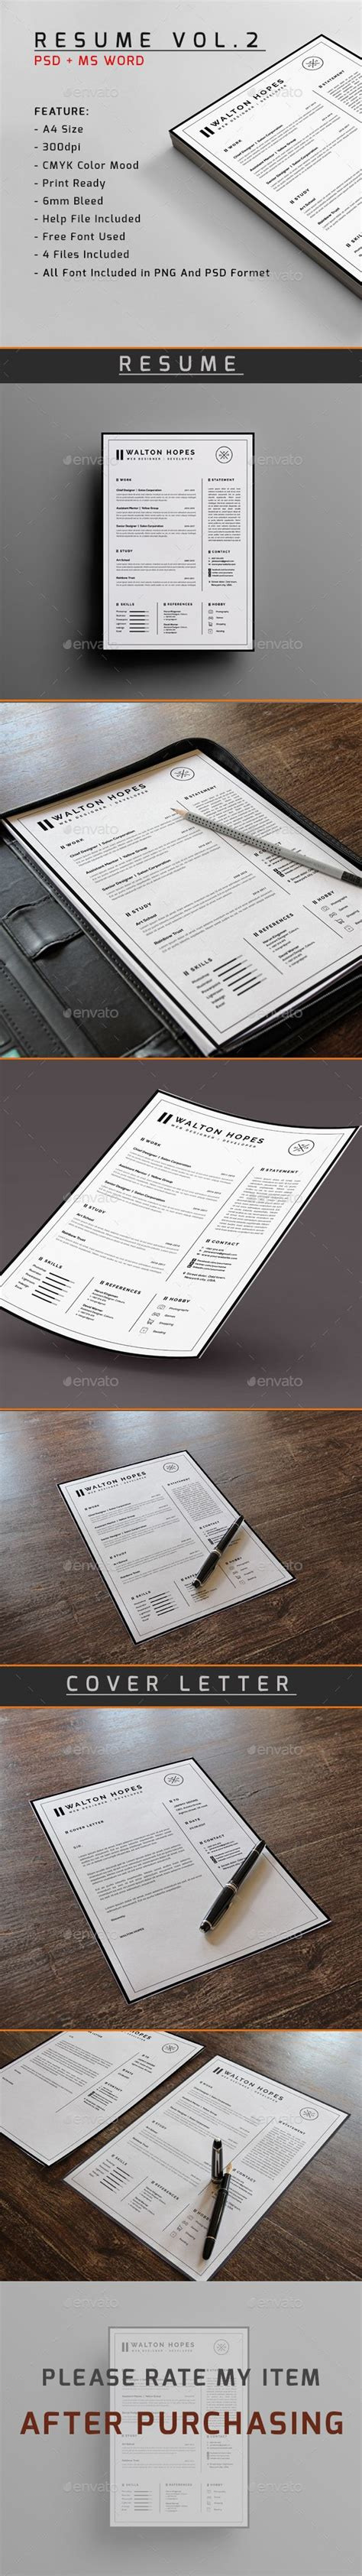 19948 resume templates free 17 best images about clever resumes on